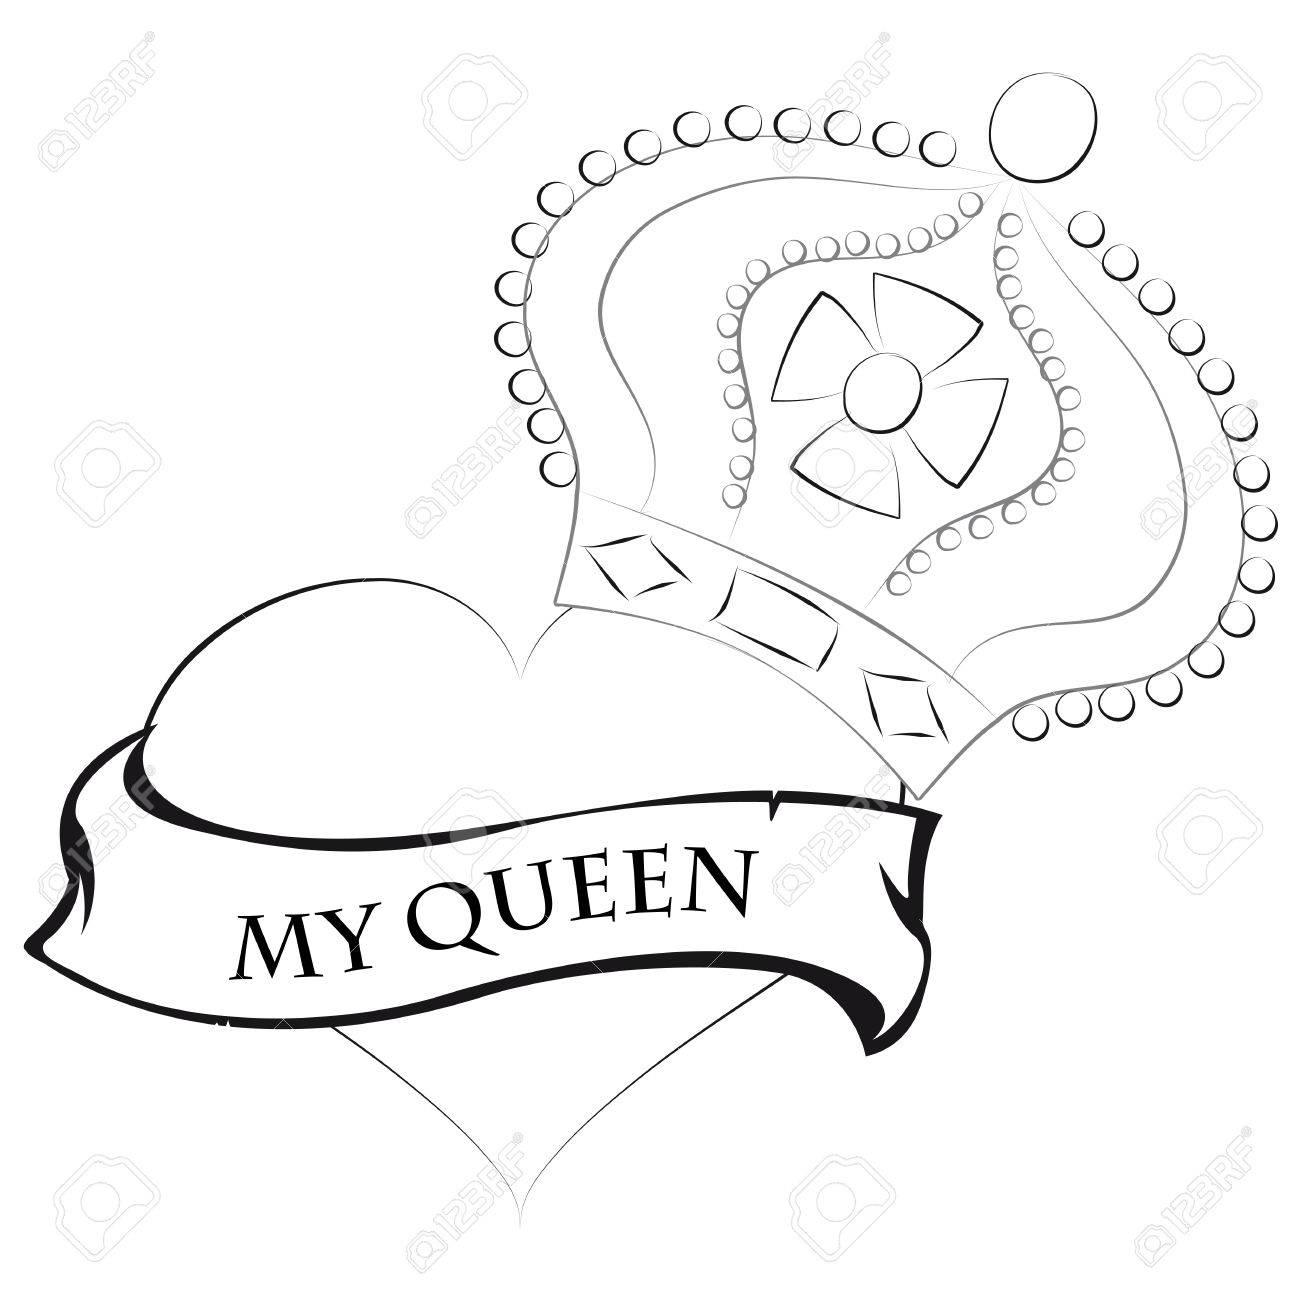 Pencil drawing of a heart shape with a queen crown on top and a ribbon saying